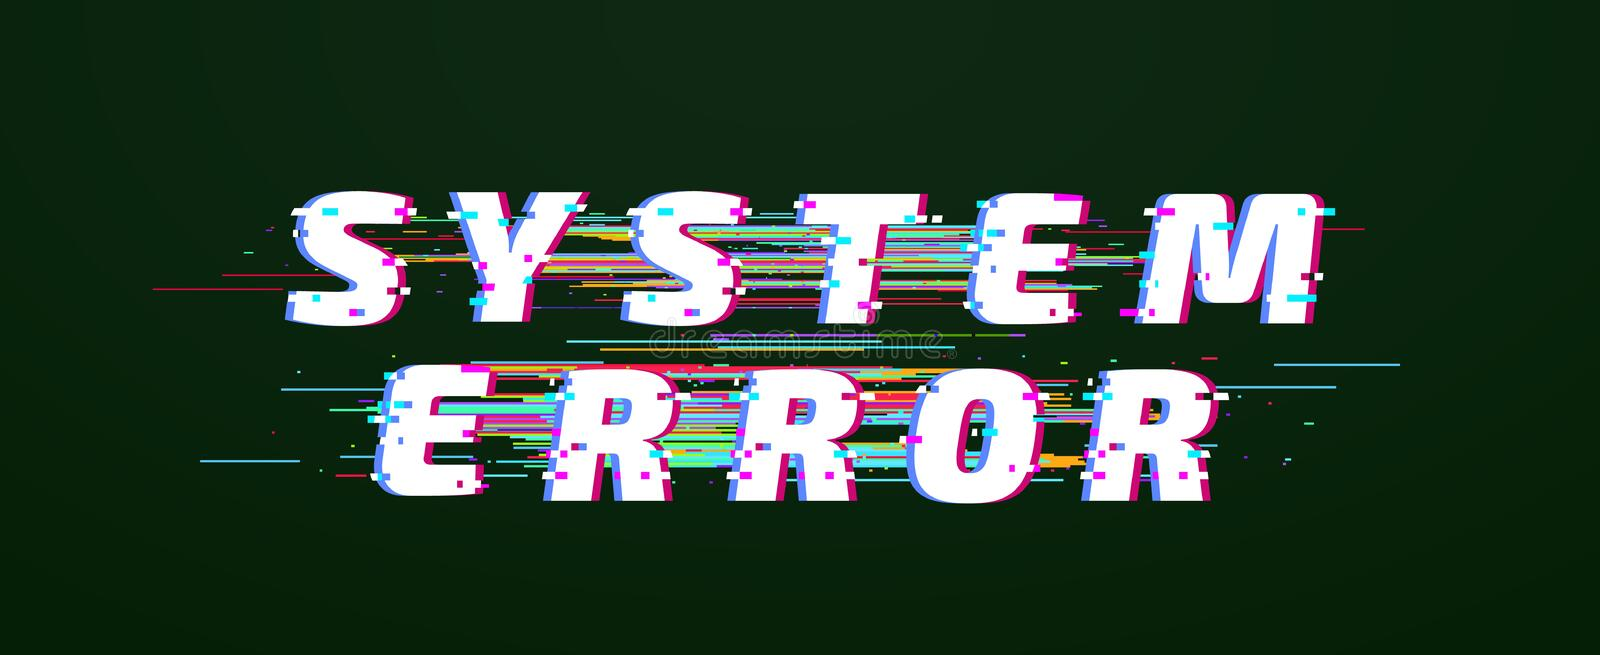 Glitch font. System error digital distorted glitched text vector stock illustration